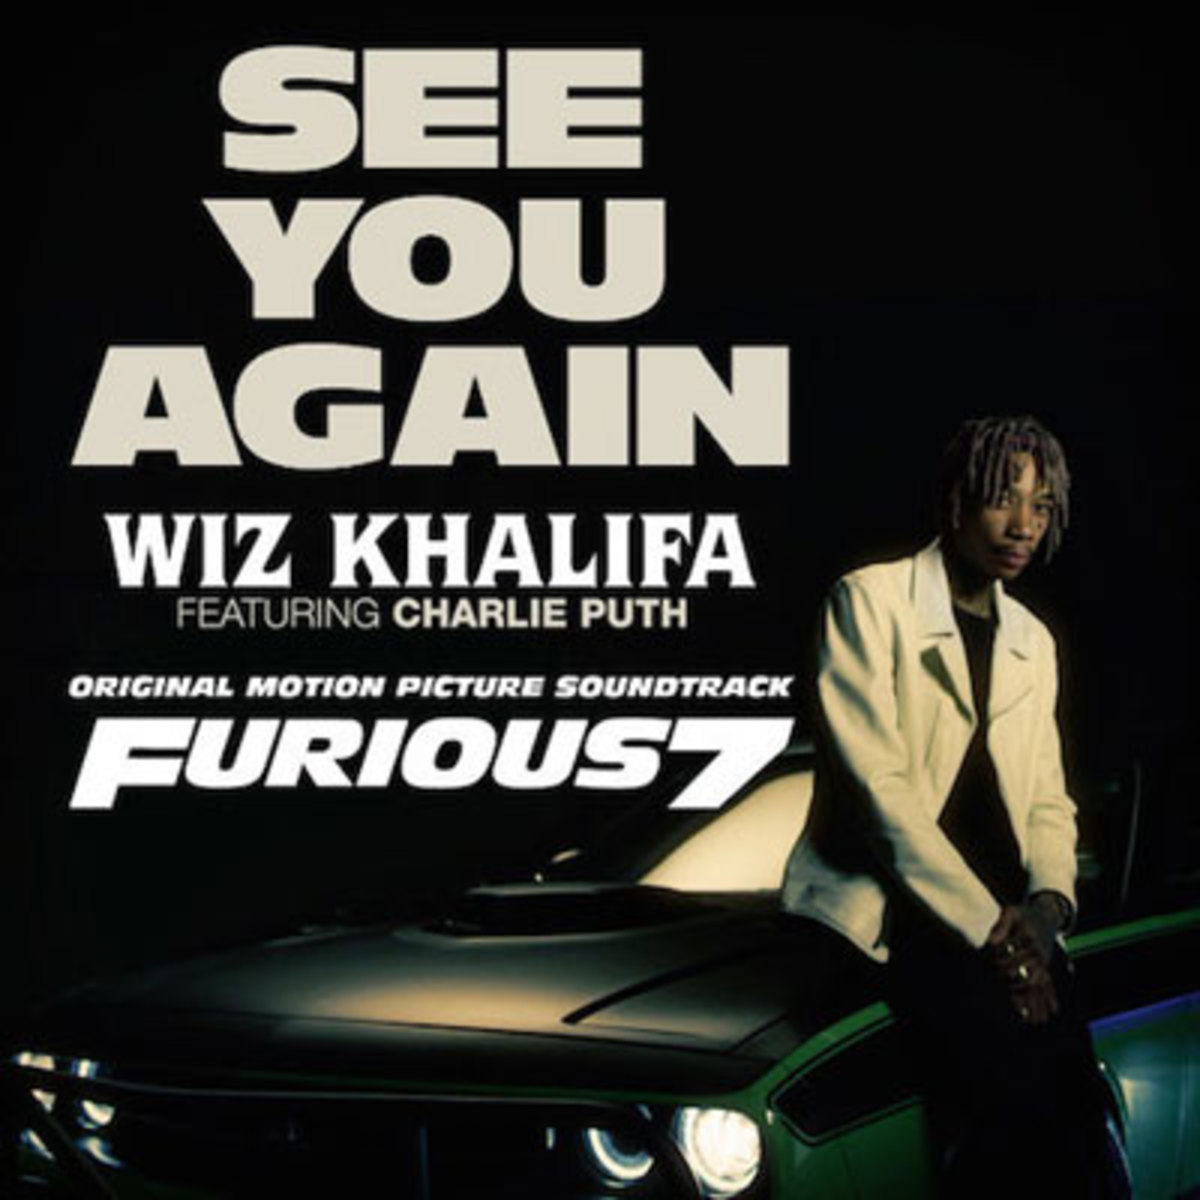 wiz-khalifa-see-you-again.jpg